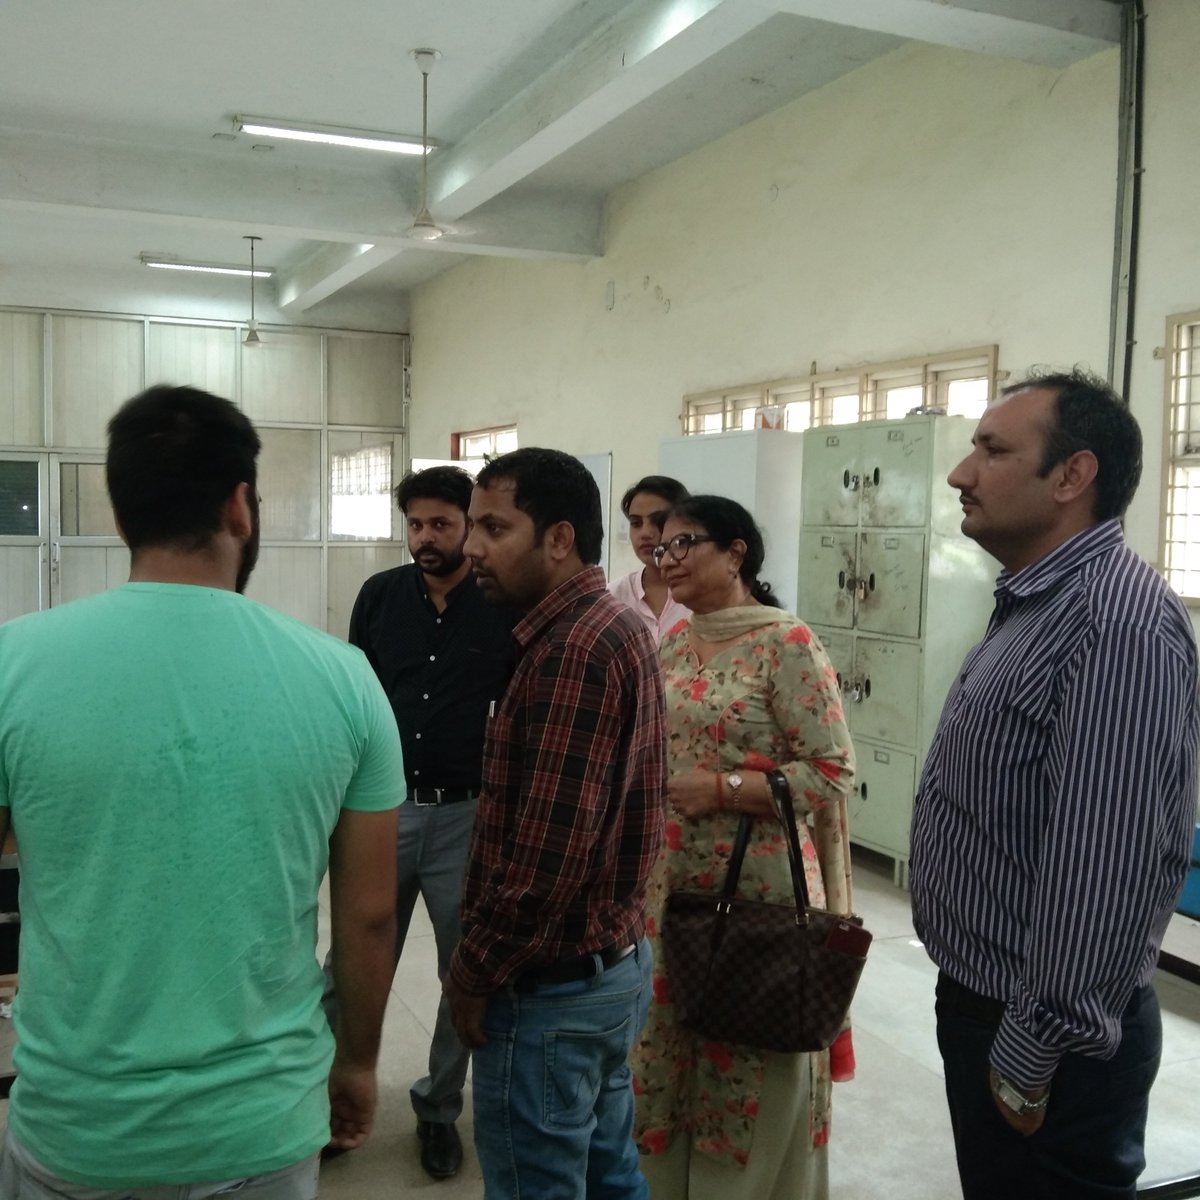 #MYMSME  A Team of TSA from PSDM chandigarh visited  CIHT on 30.07.2019 to see the activities undergoing at Ciht Jalandhar https://t.co/o5ZaHPghw4